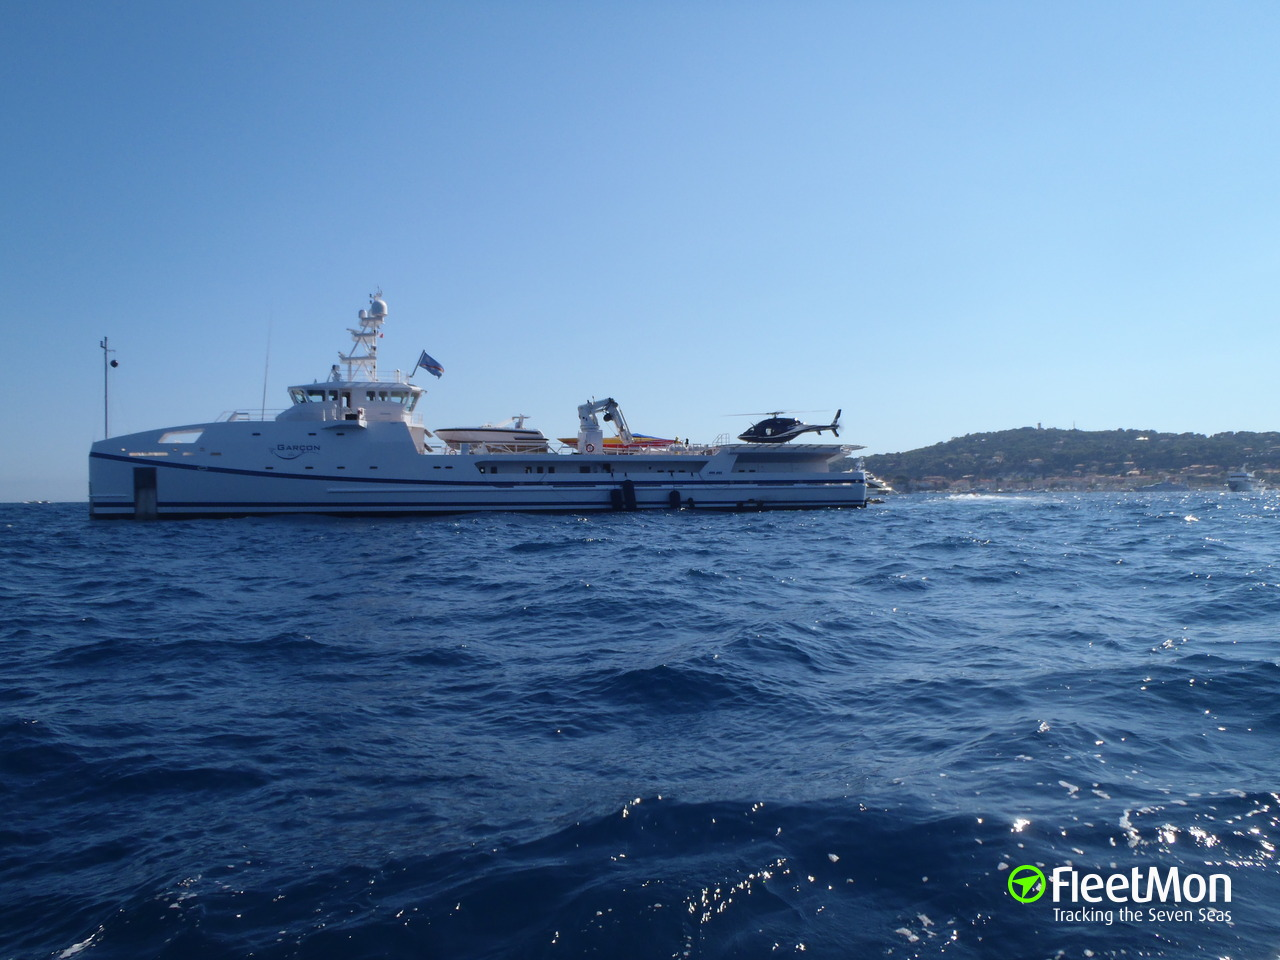 Garcon yacht imo 9587051